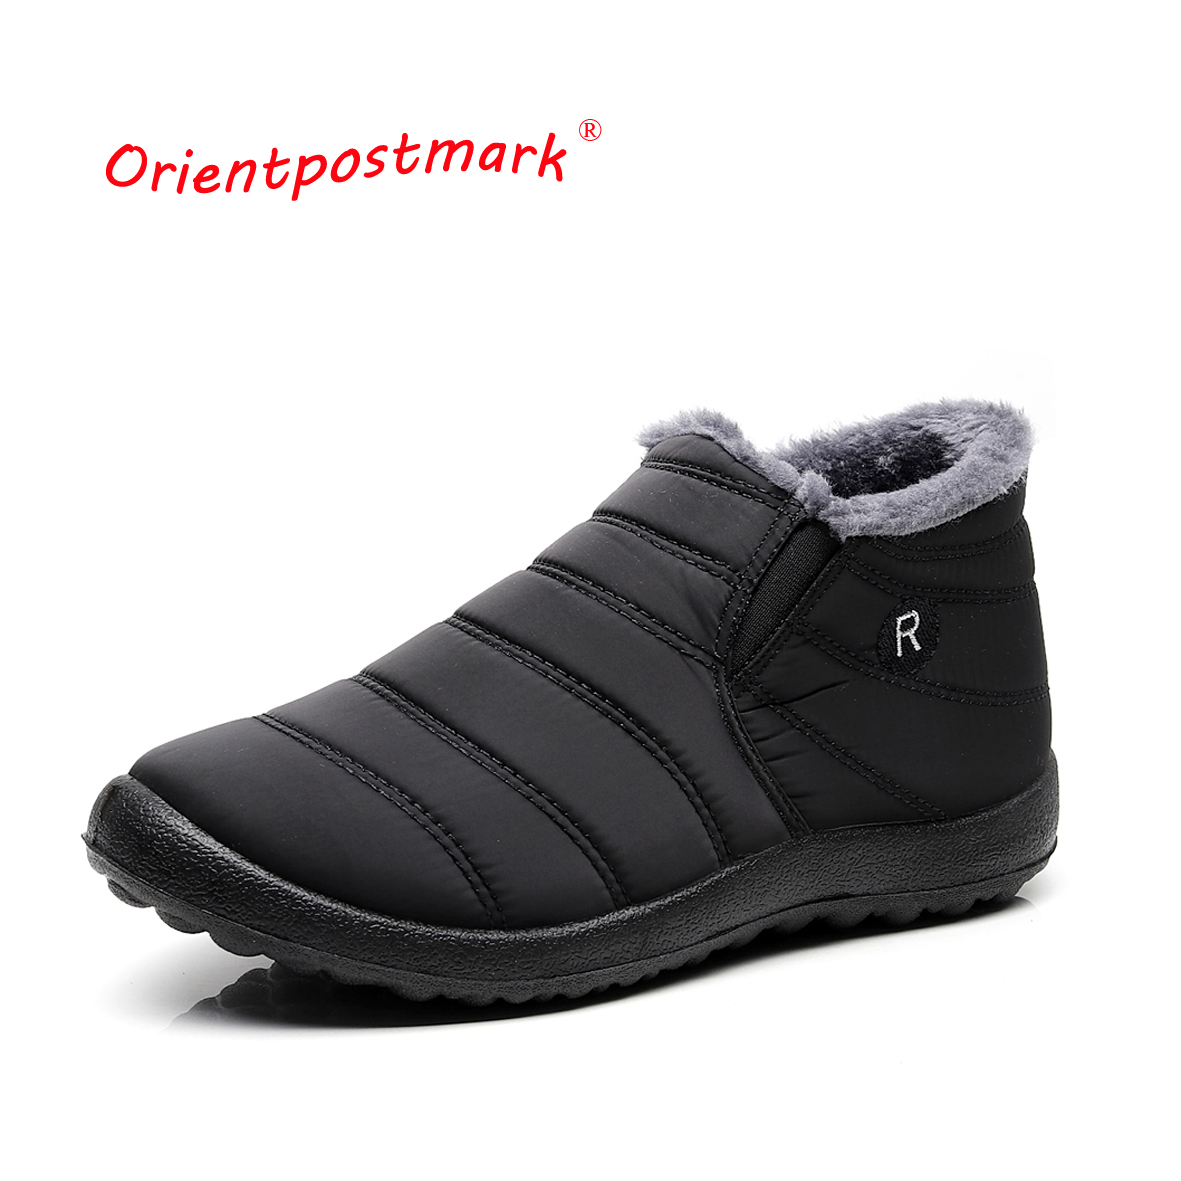 Winter Boots Ski-Shoes Waterproof Solid-Color Unisex Bottom Anti-Skid Plush Ankle No